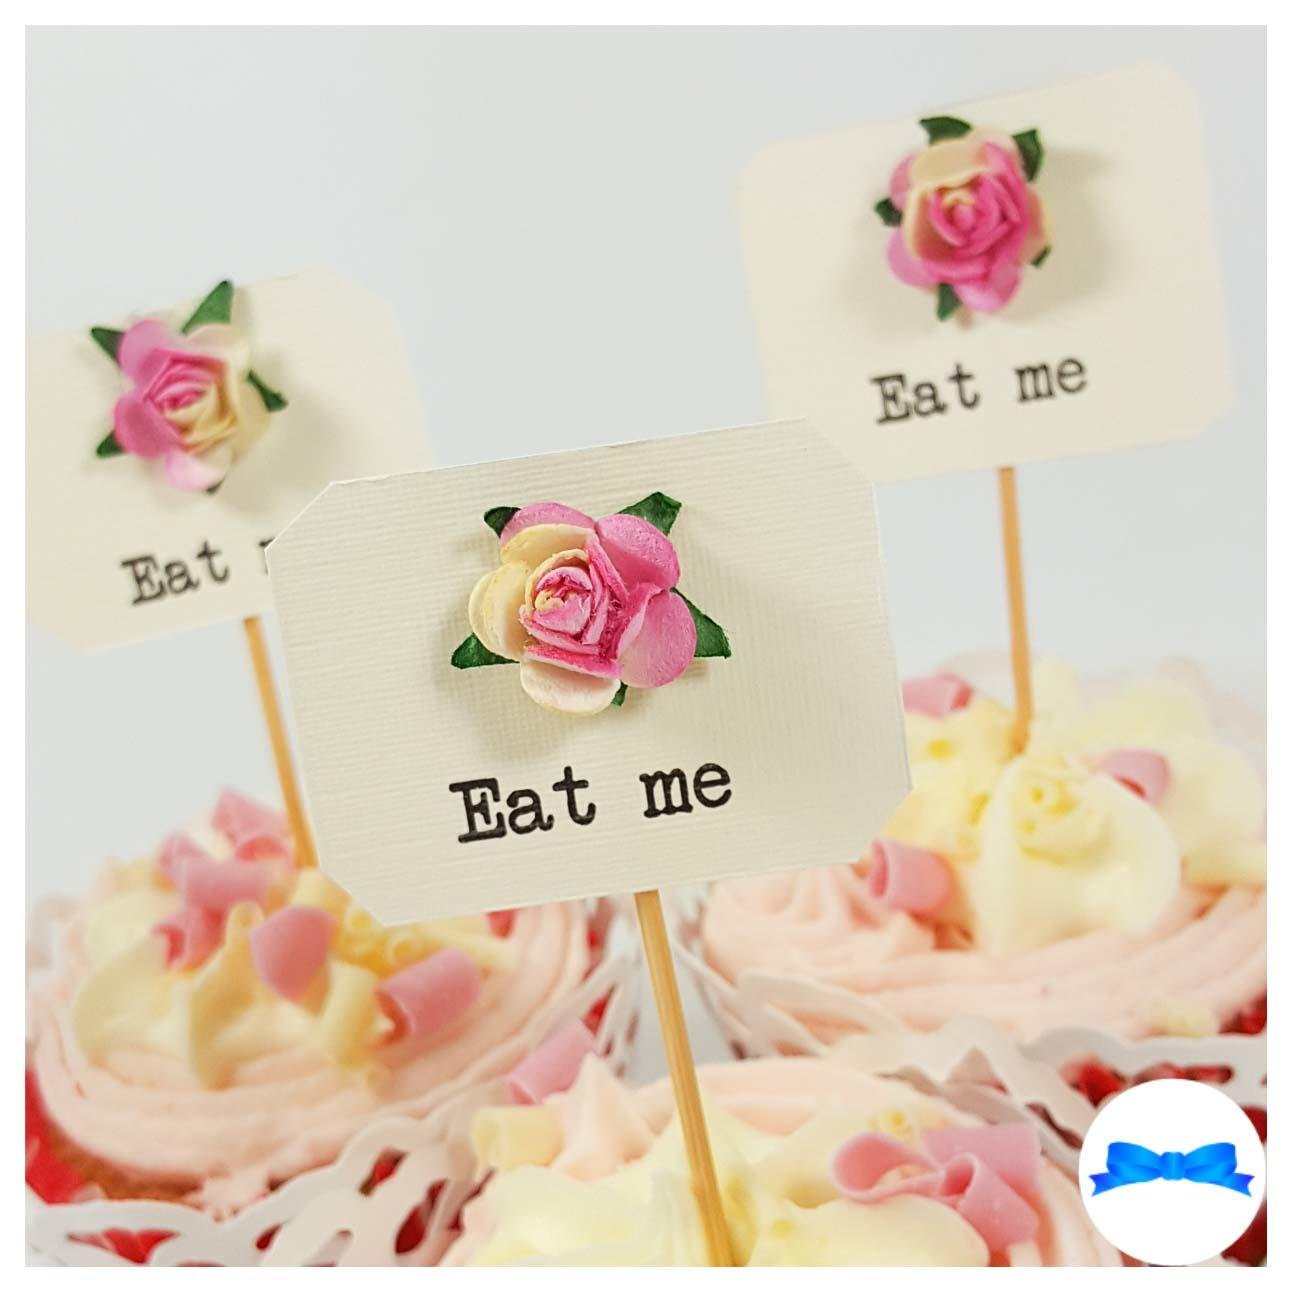 Eat me Hen party cupcake toppers with pink and cream roses